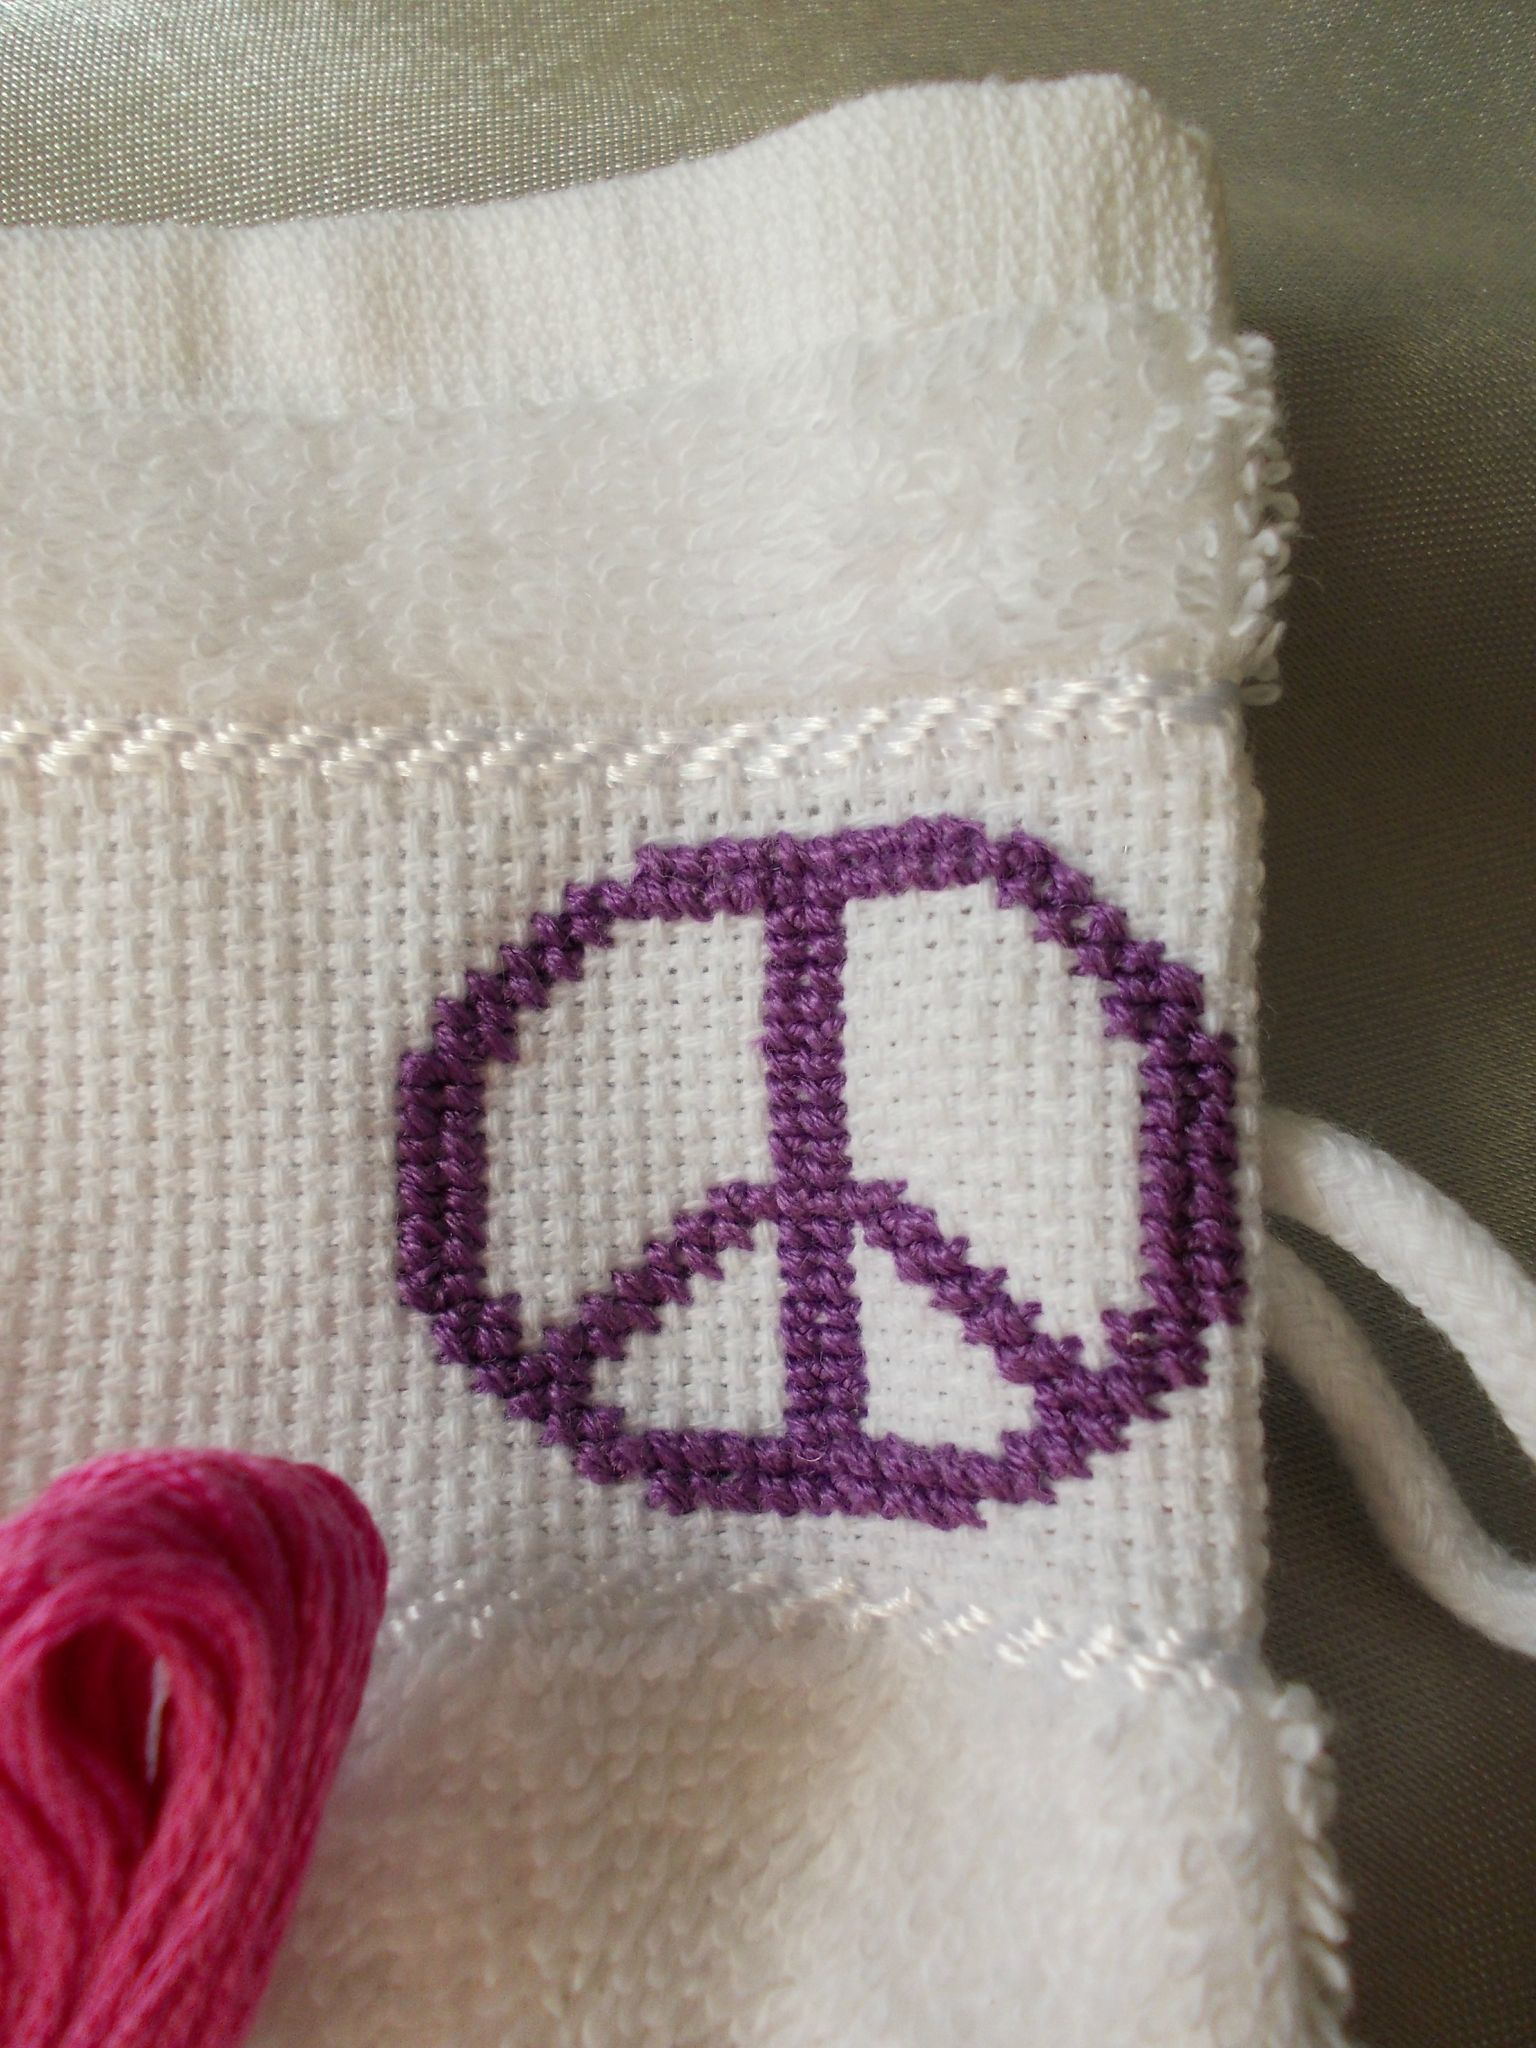 PEACE AND LOVE - VIOLET